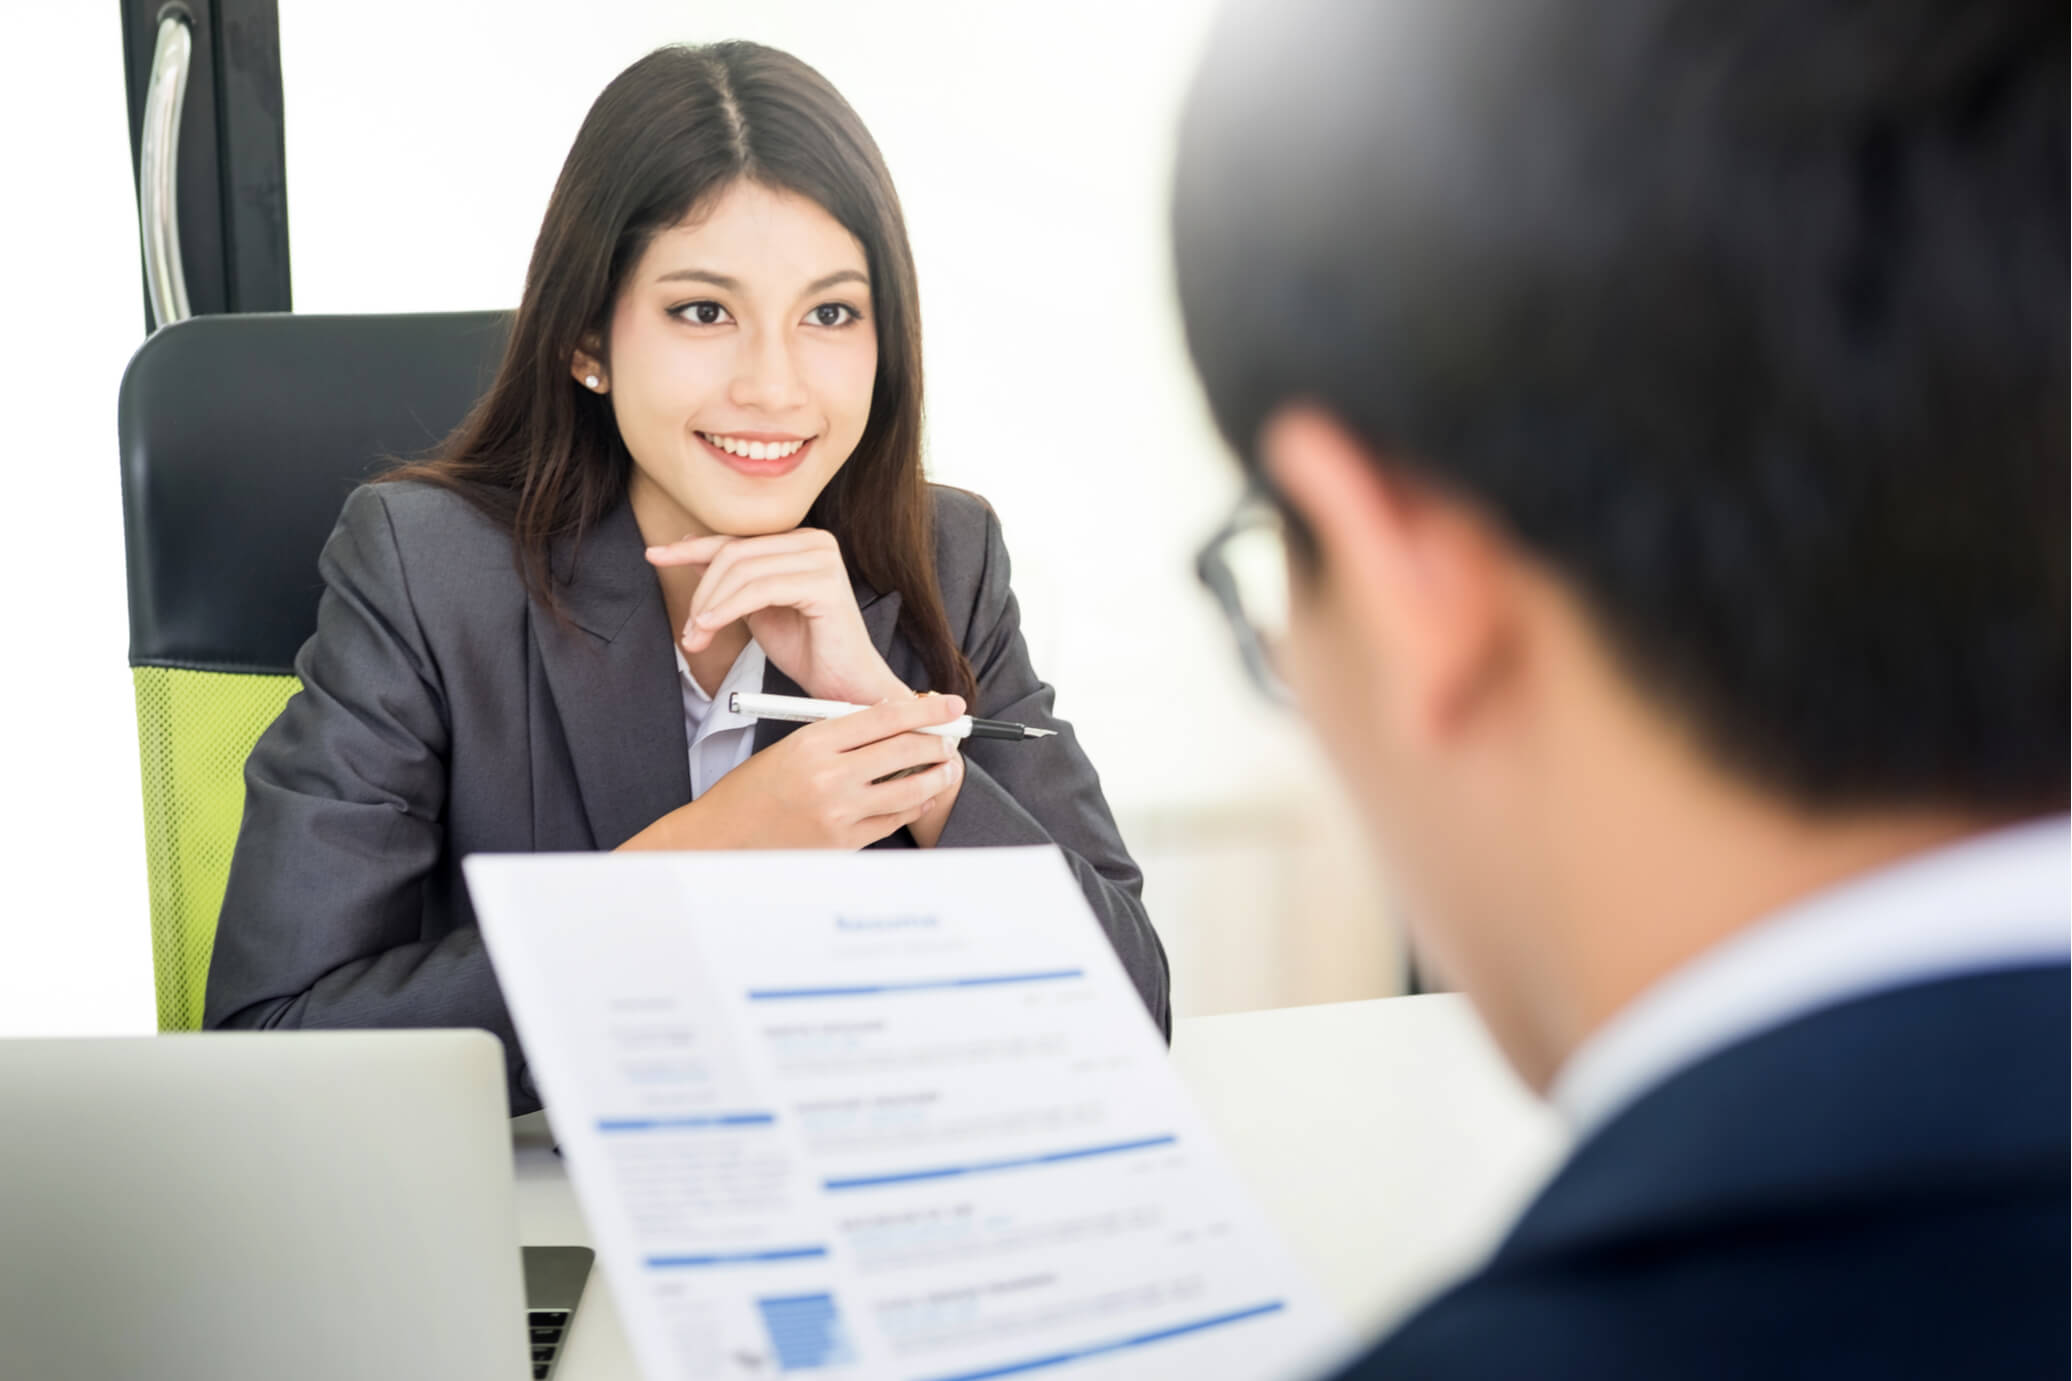 interviewer tips for managers